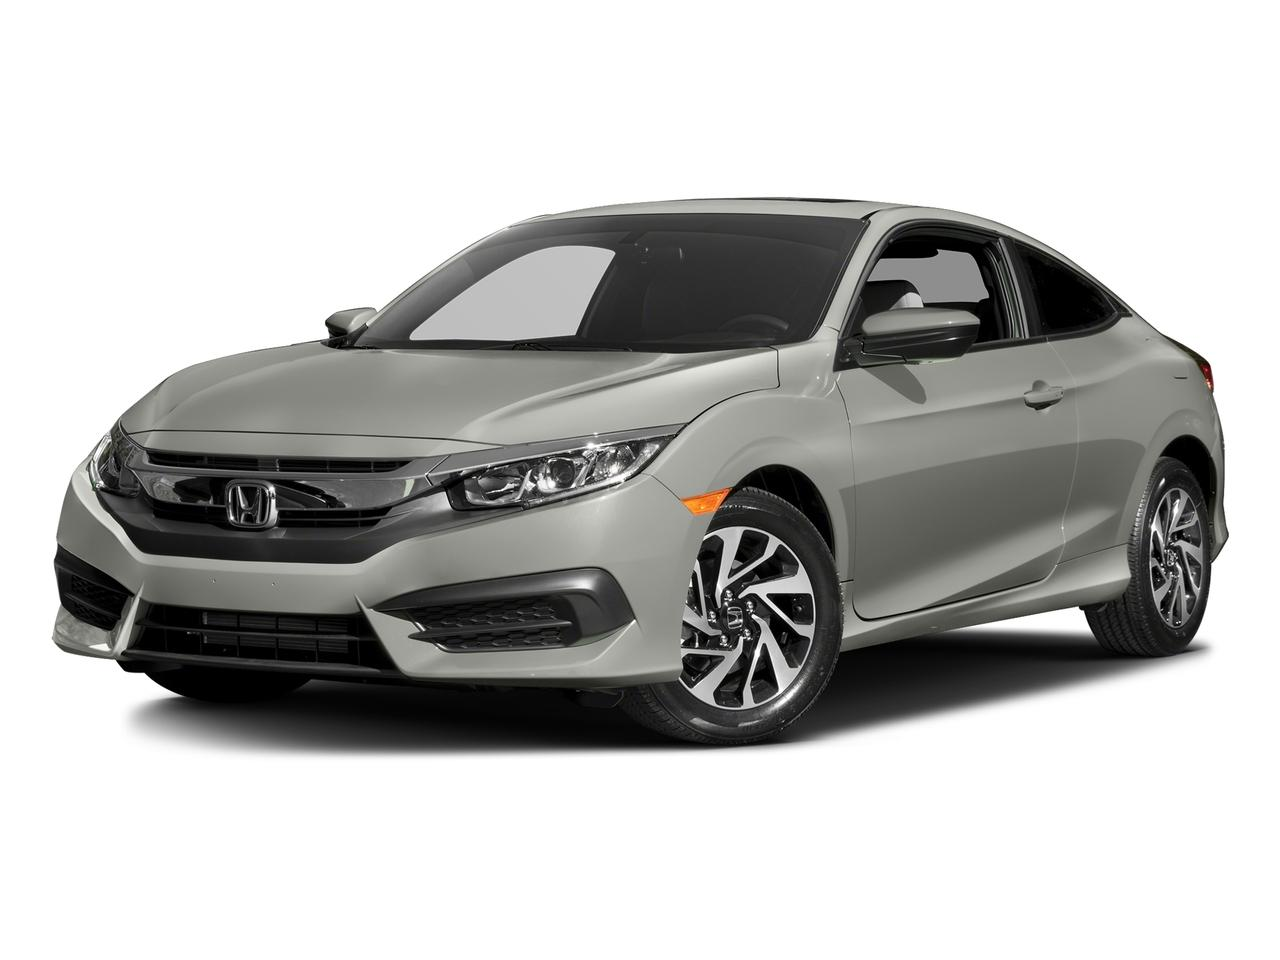 2016 Honda Civic Coupe Vehicle Photo in Portland, OR 97225